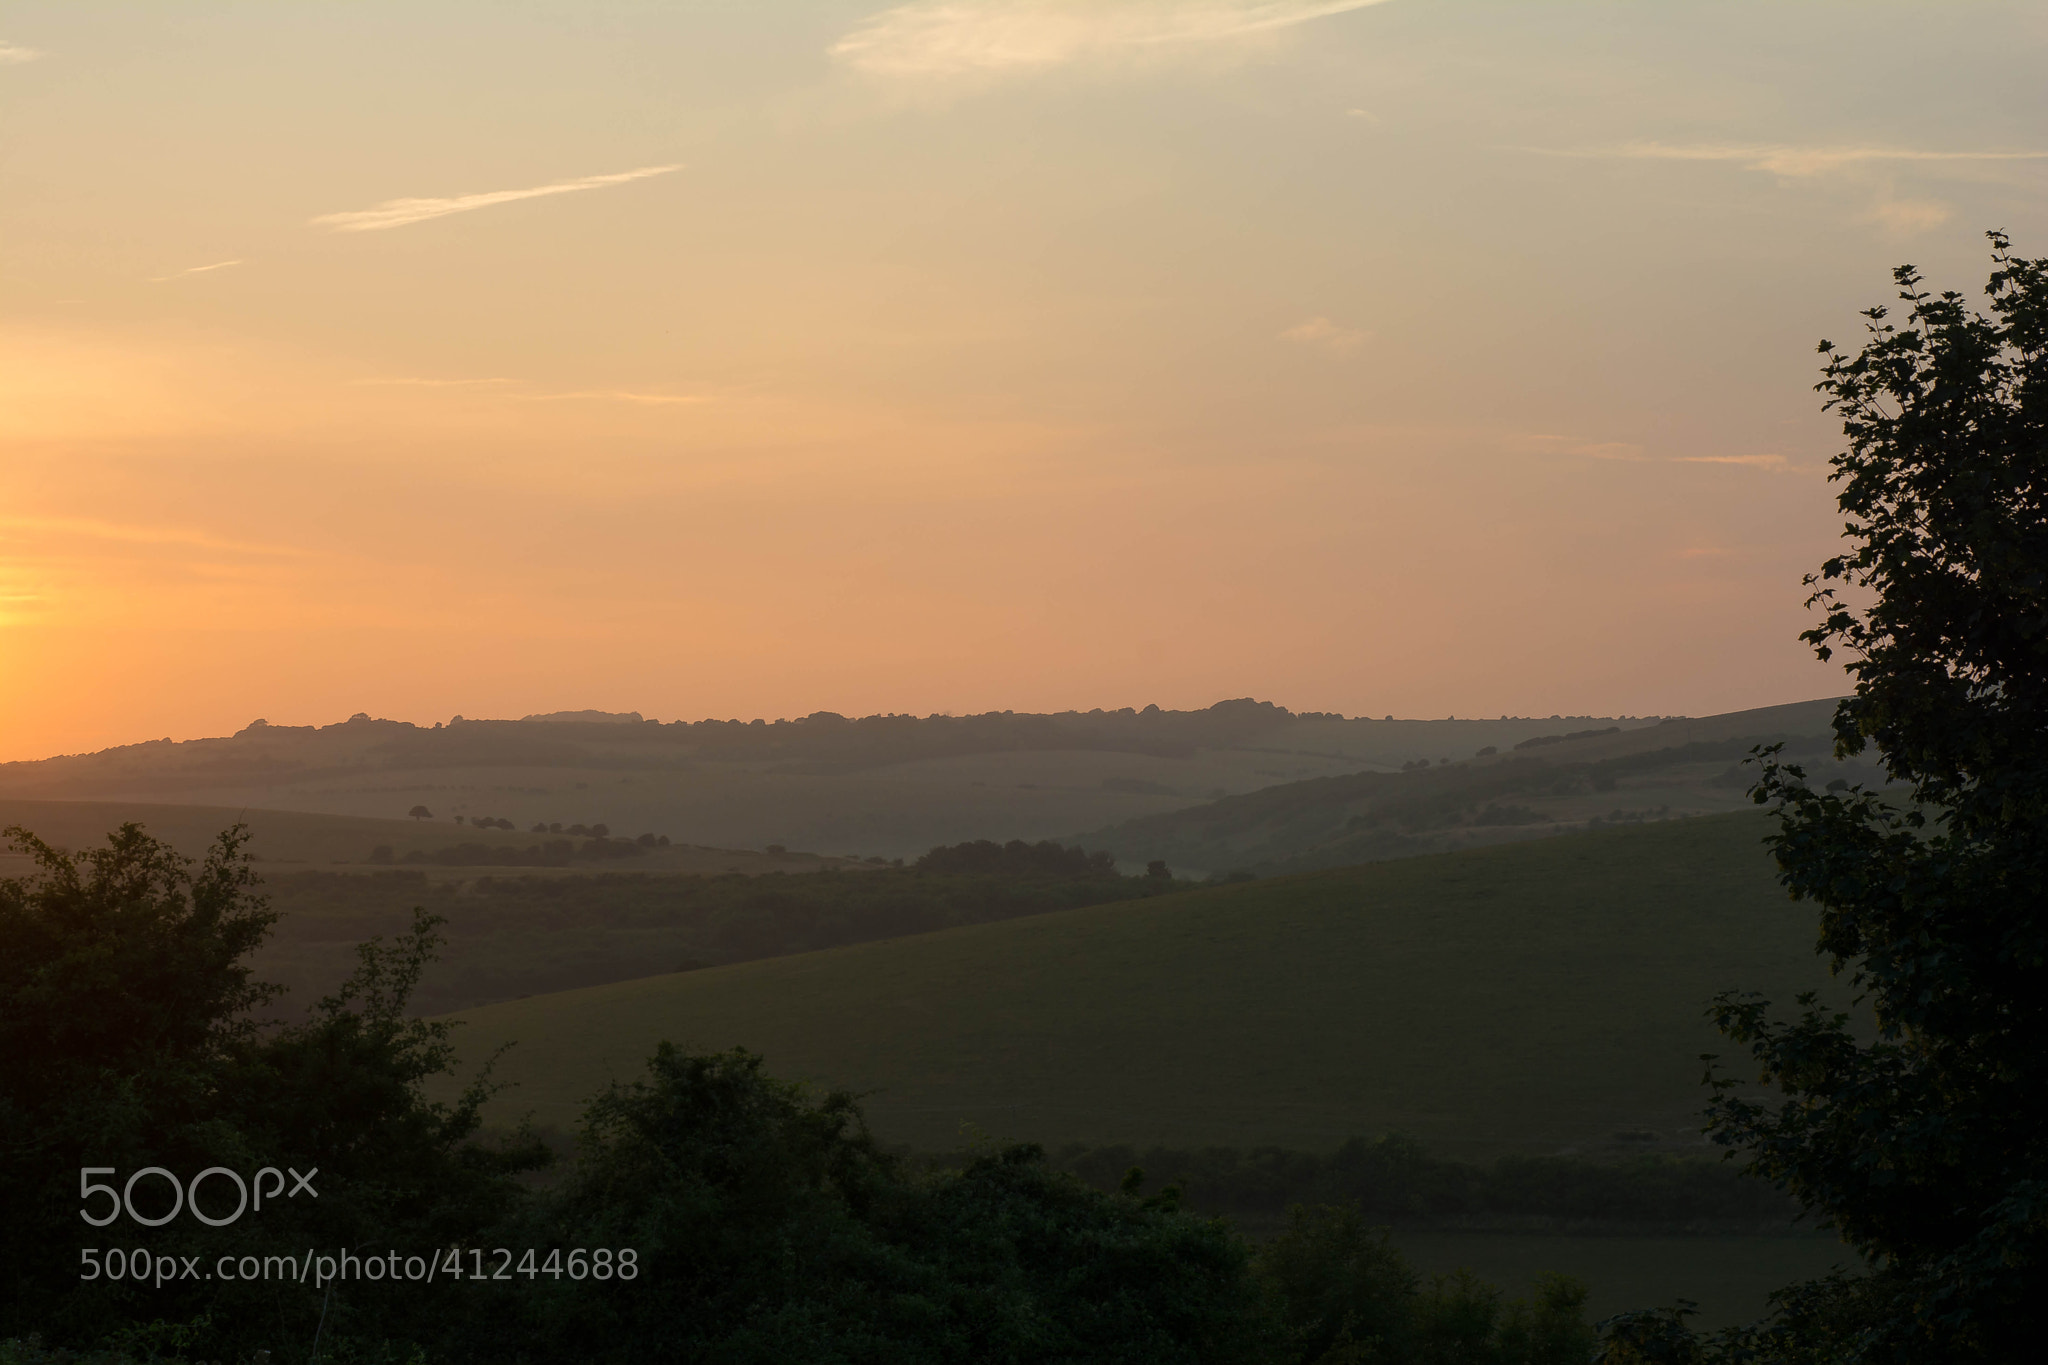 Photograph My New D7100 Roadtest - South Downs by julian john on 500px